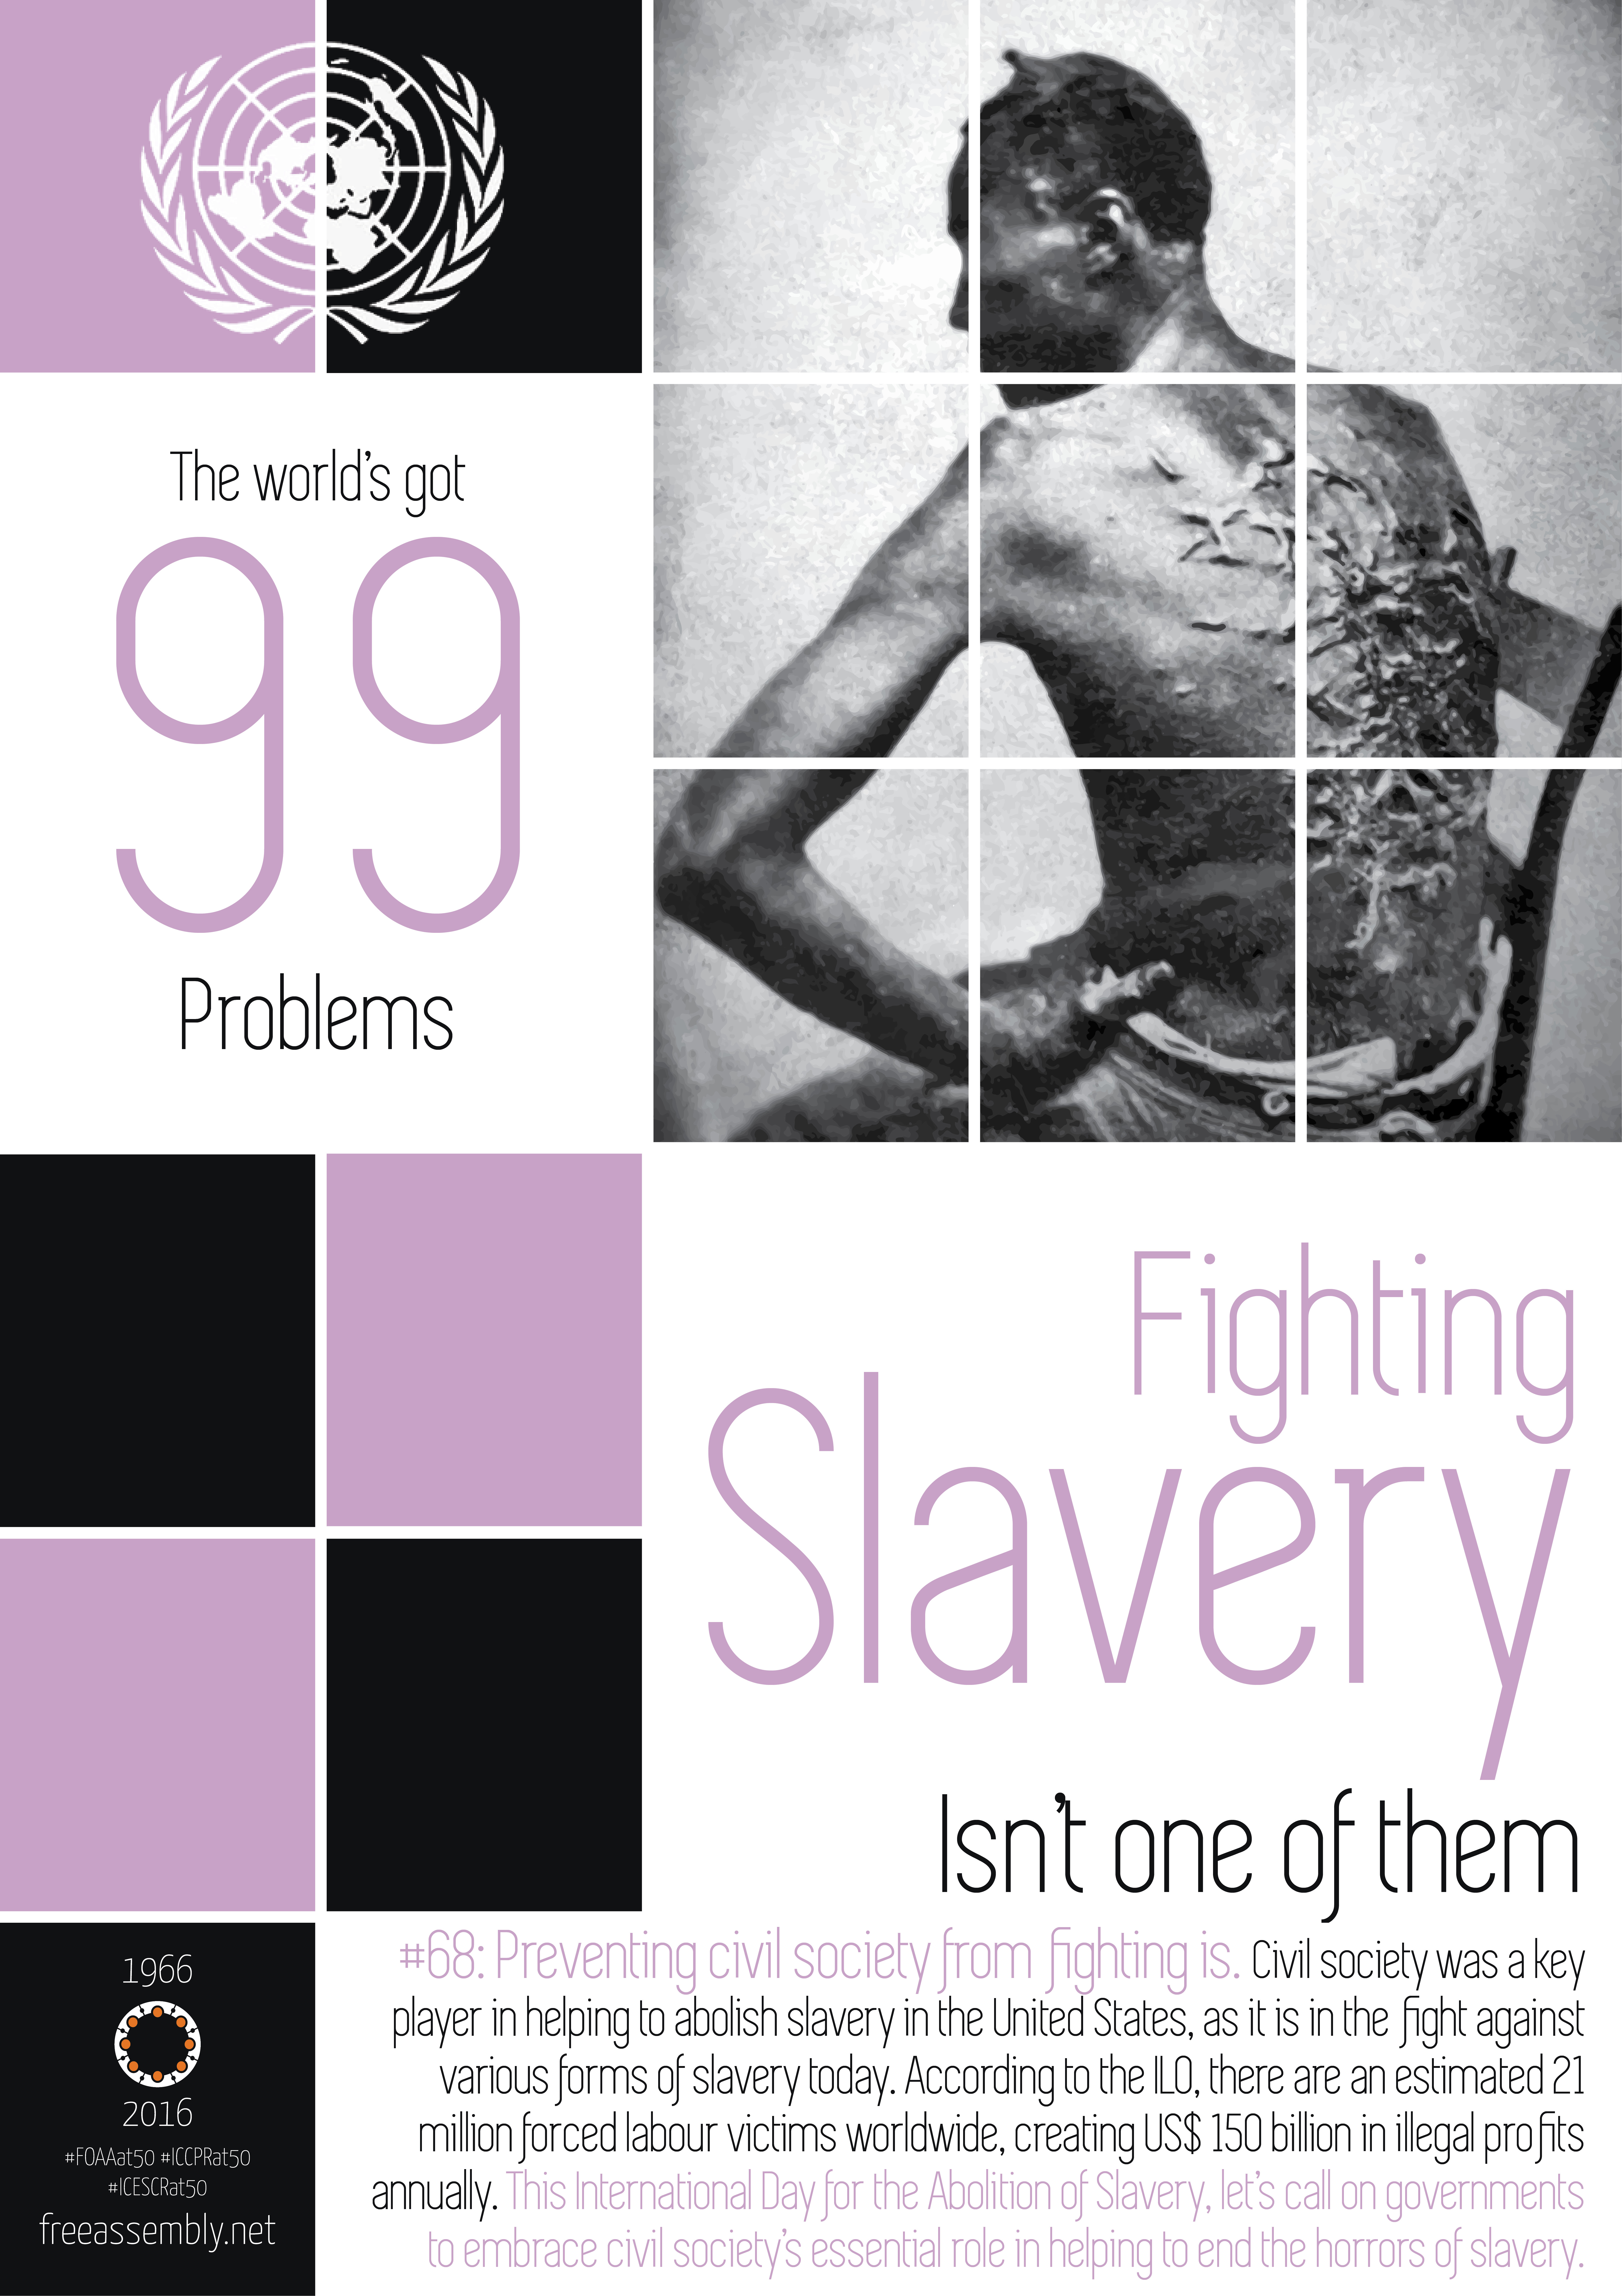 The world's got #99problems. Fighting slavery isn't one of them.